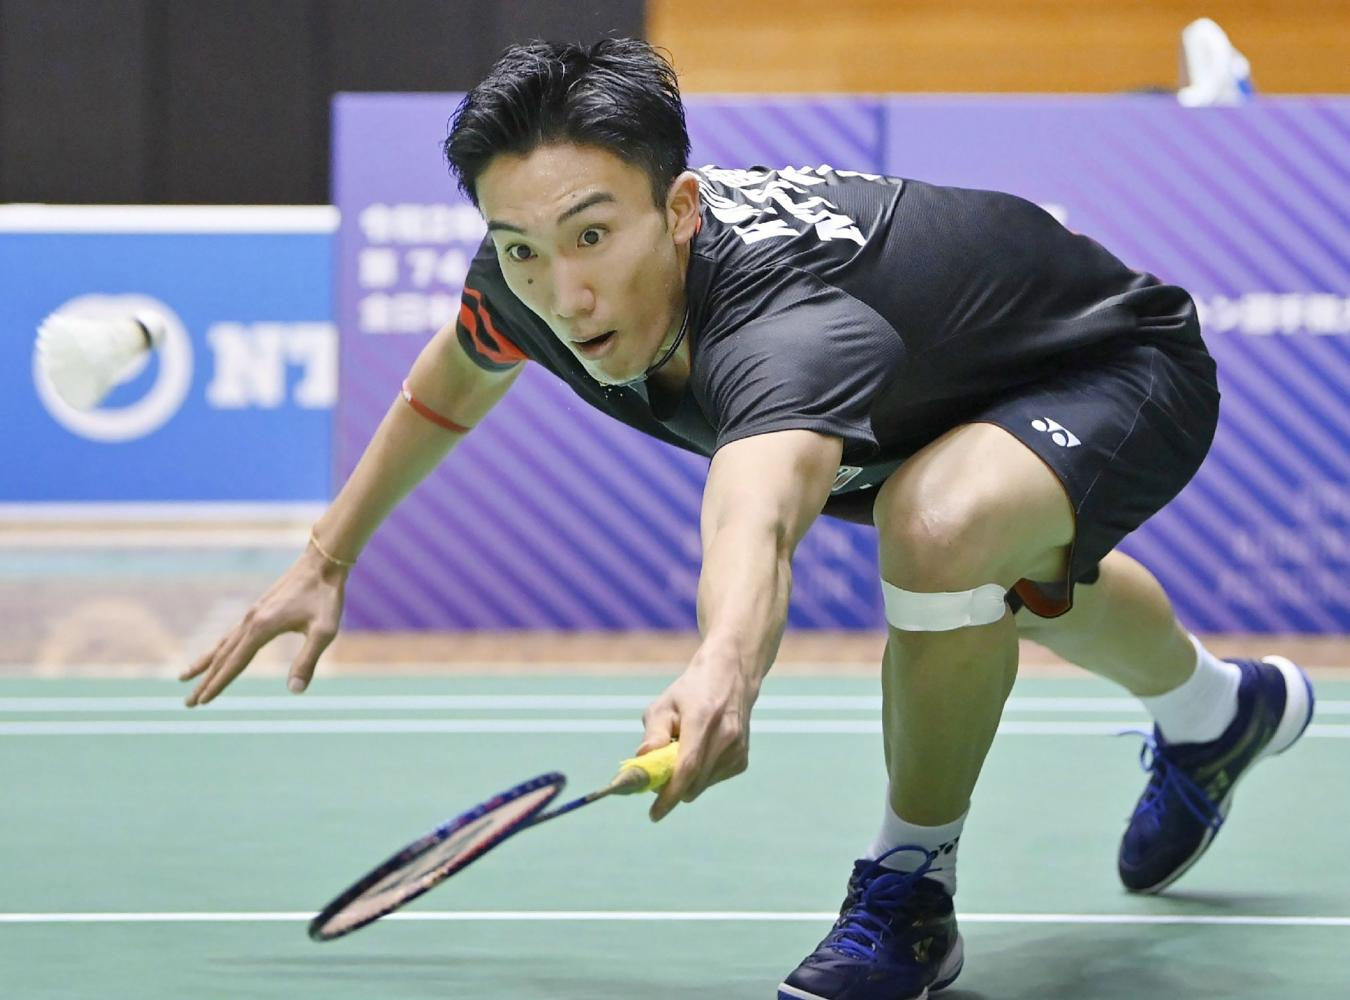 Kento Momota competes at the All-Japan National Championships last month. (AFP photo)